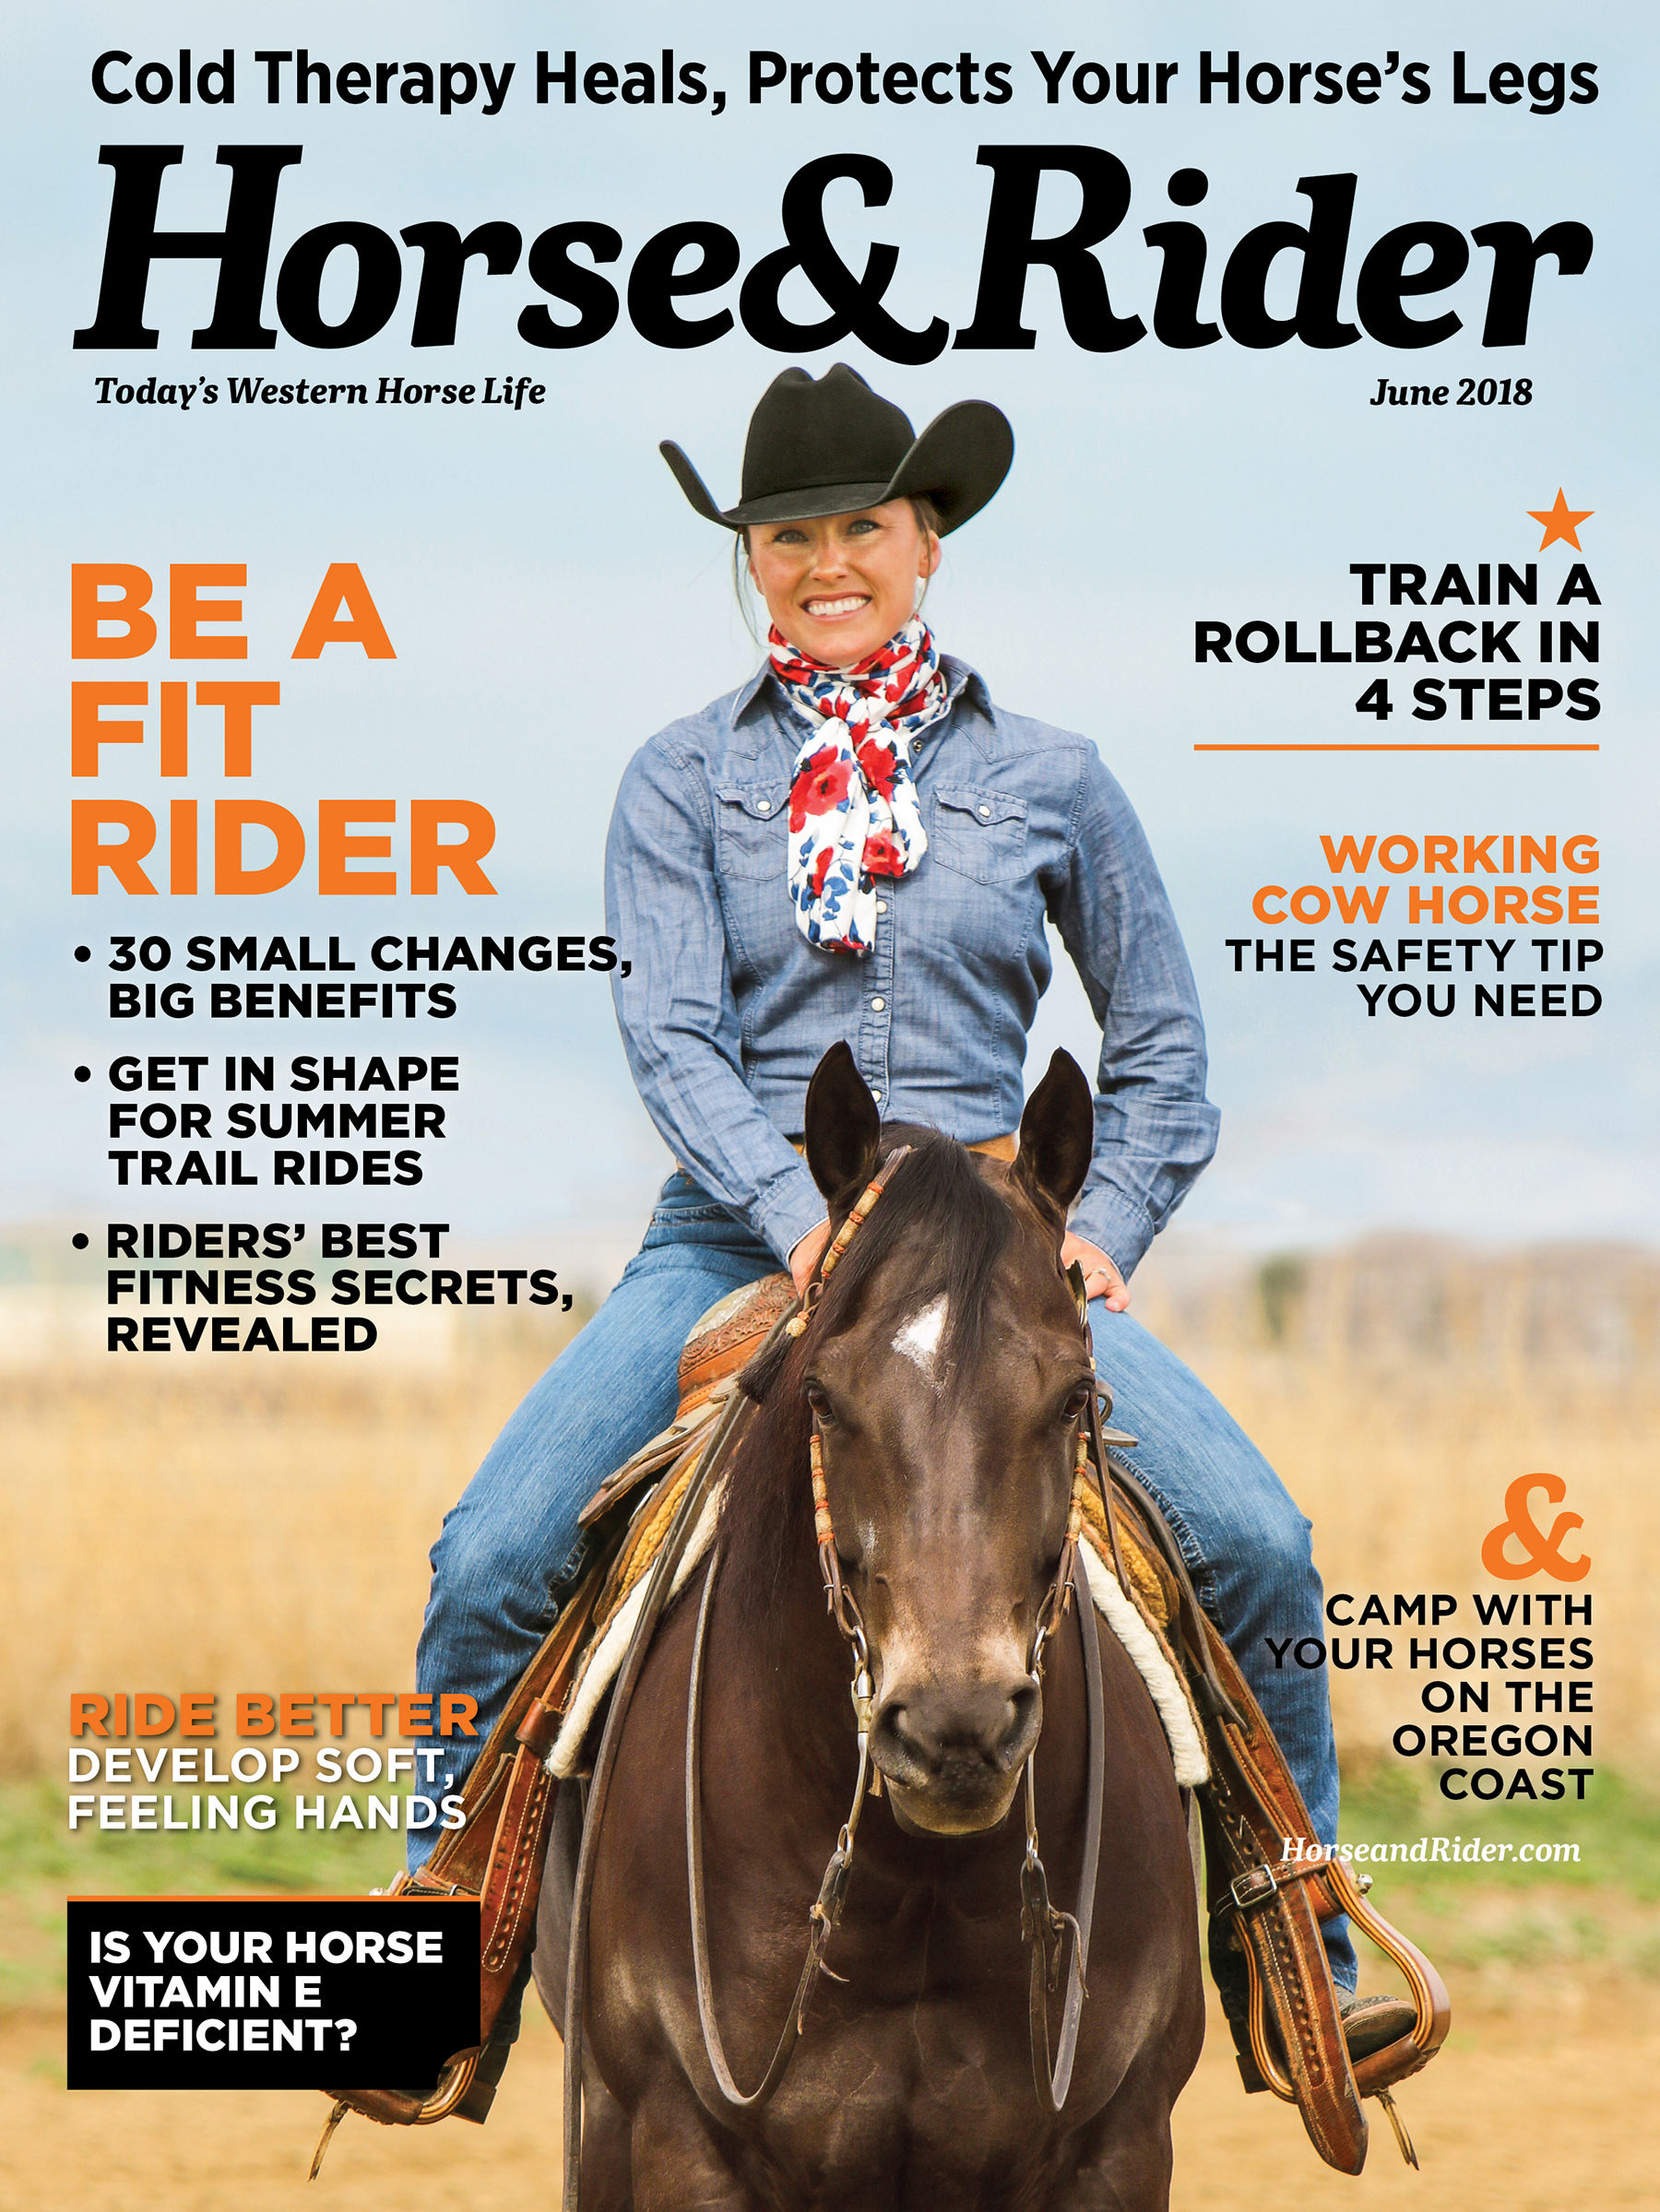 Horse&Rider | June 2018 Issue